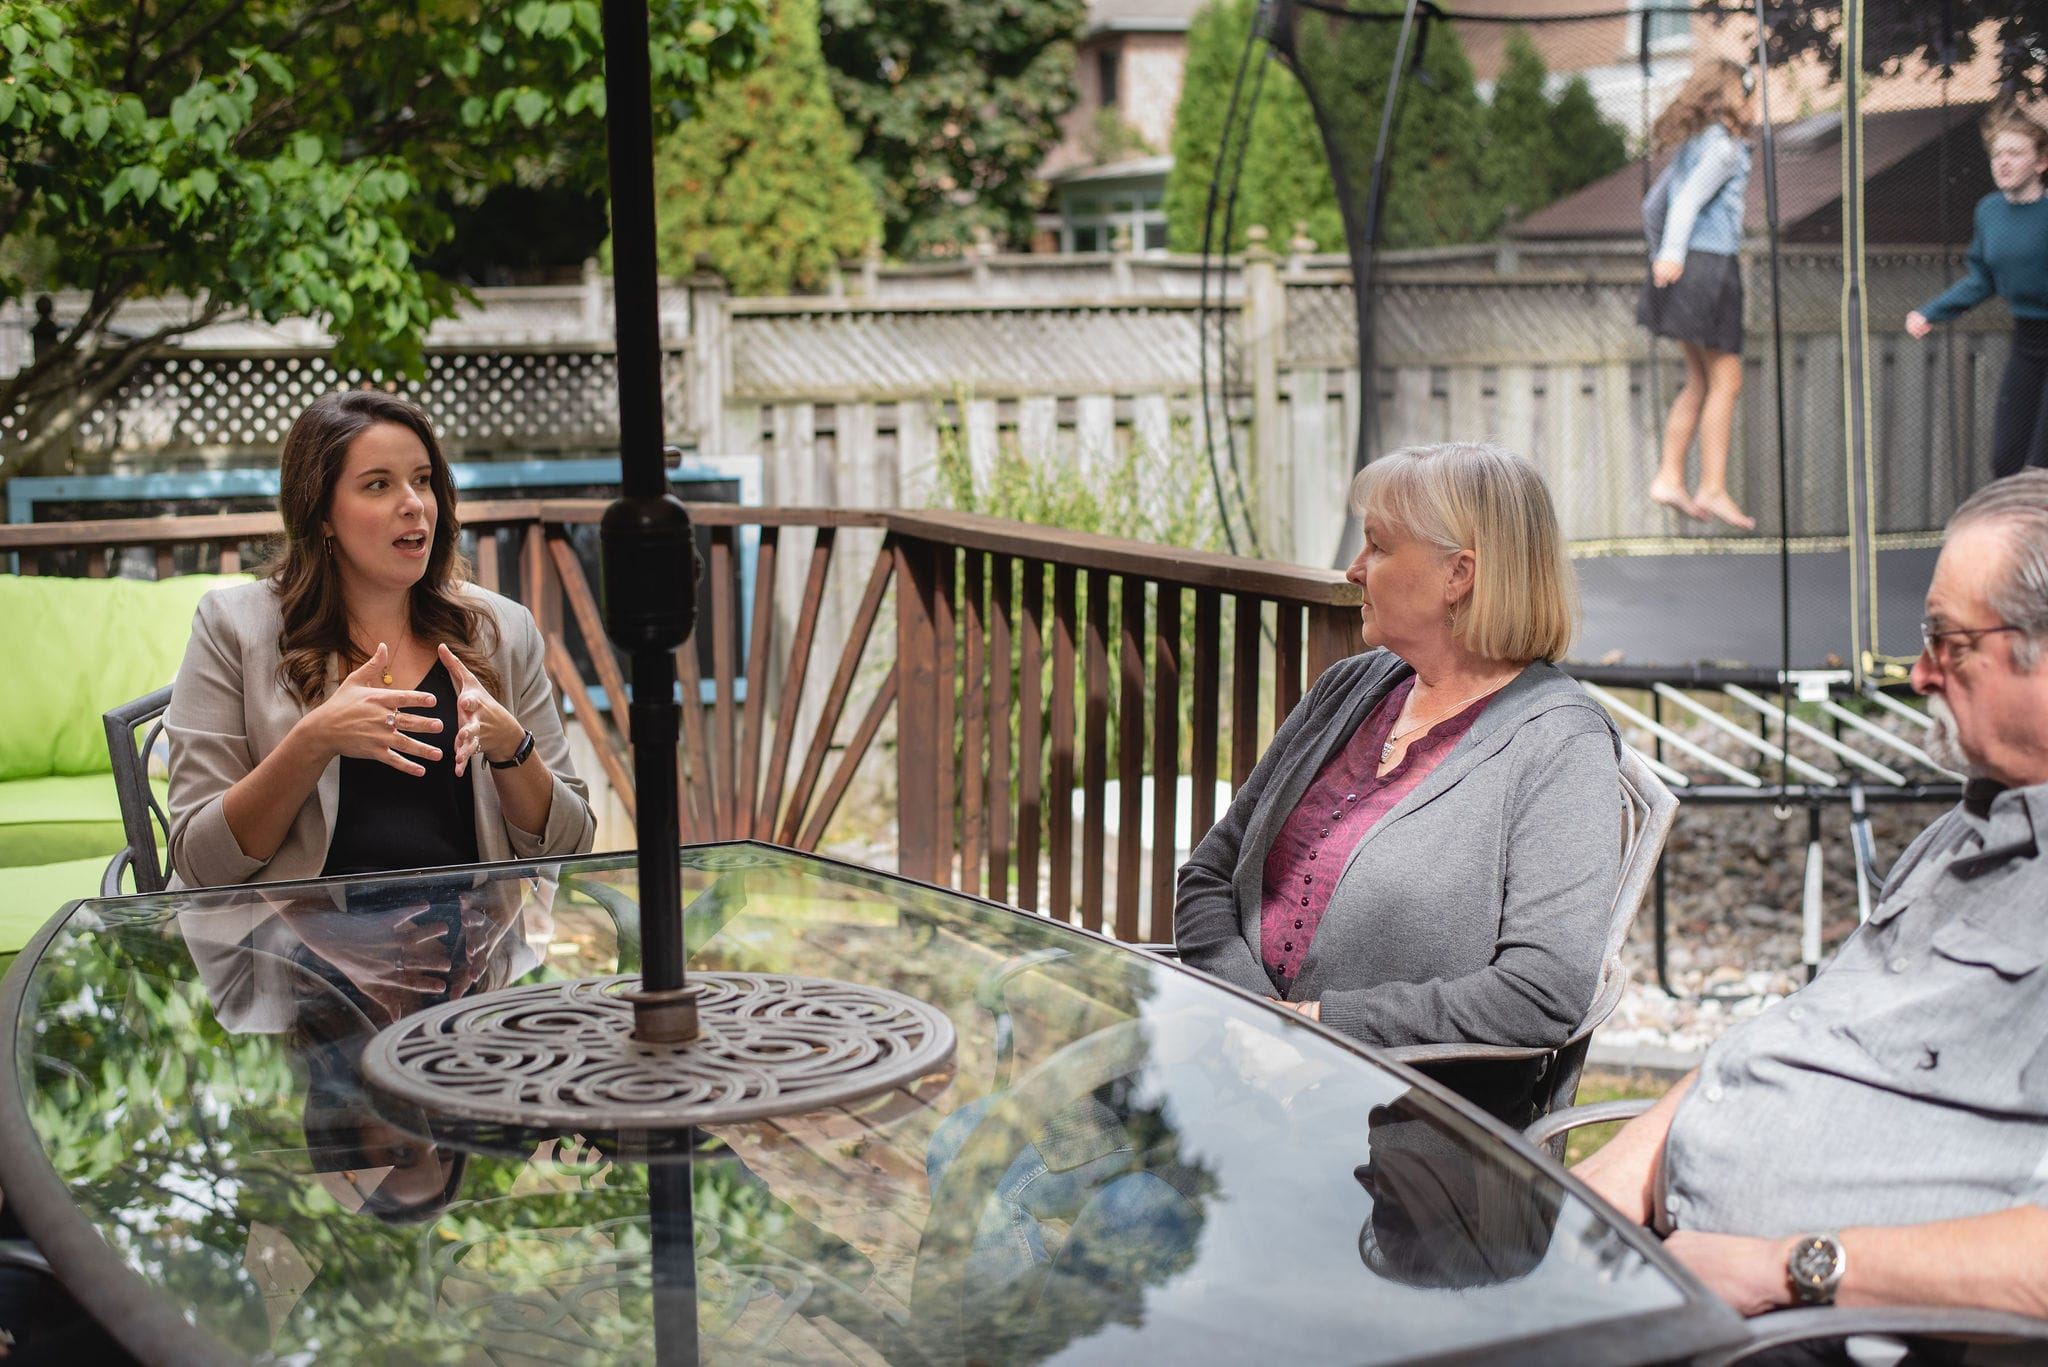 Mallory McGrath talking with a family at a patio table